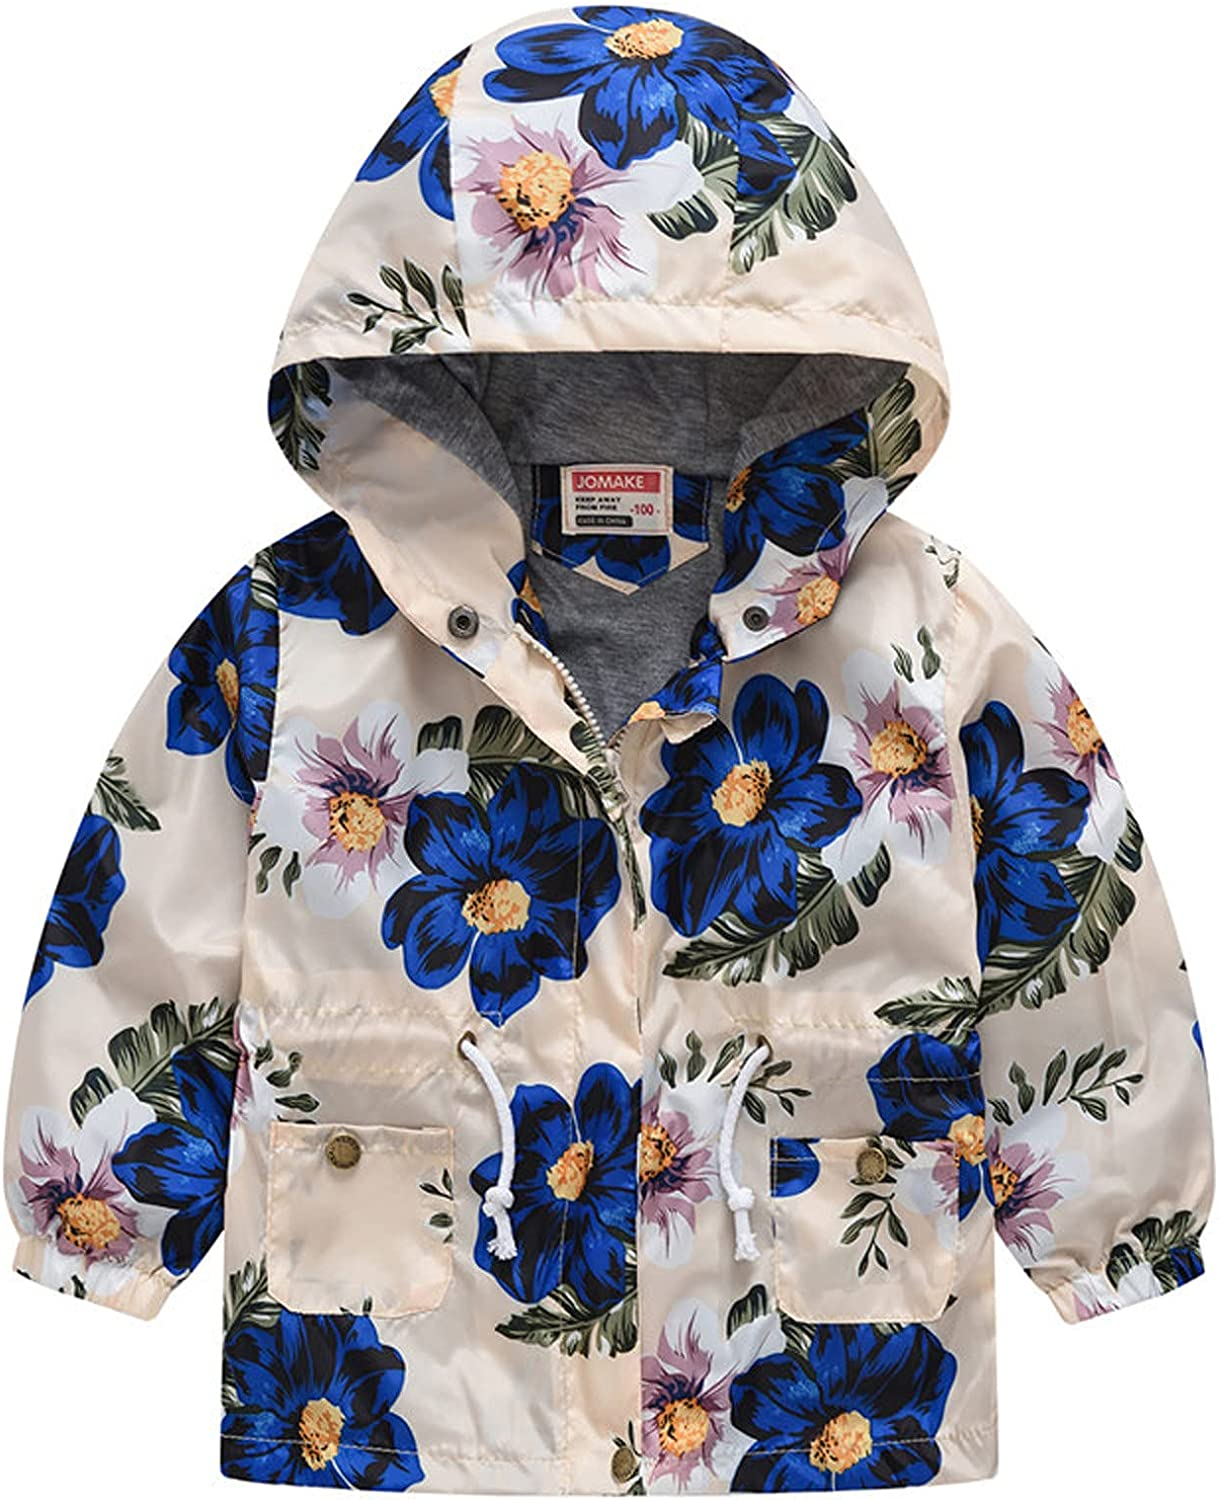 ZXCC Kids Grils Boys Outdoor Jacket Fashion Print Hooded Autumn Winter Long Sleeve Casual Lightweight Outerwear Coats